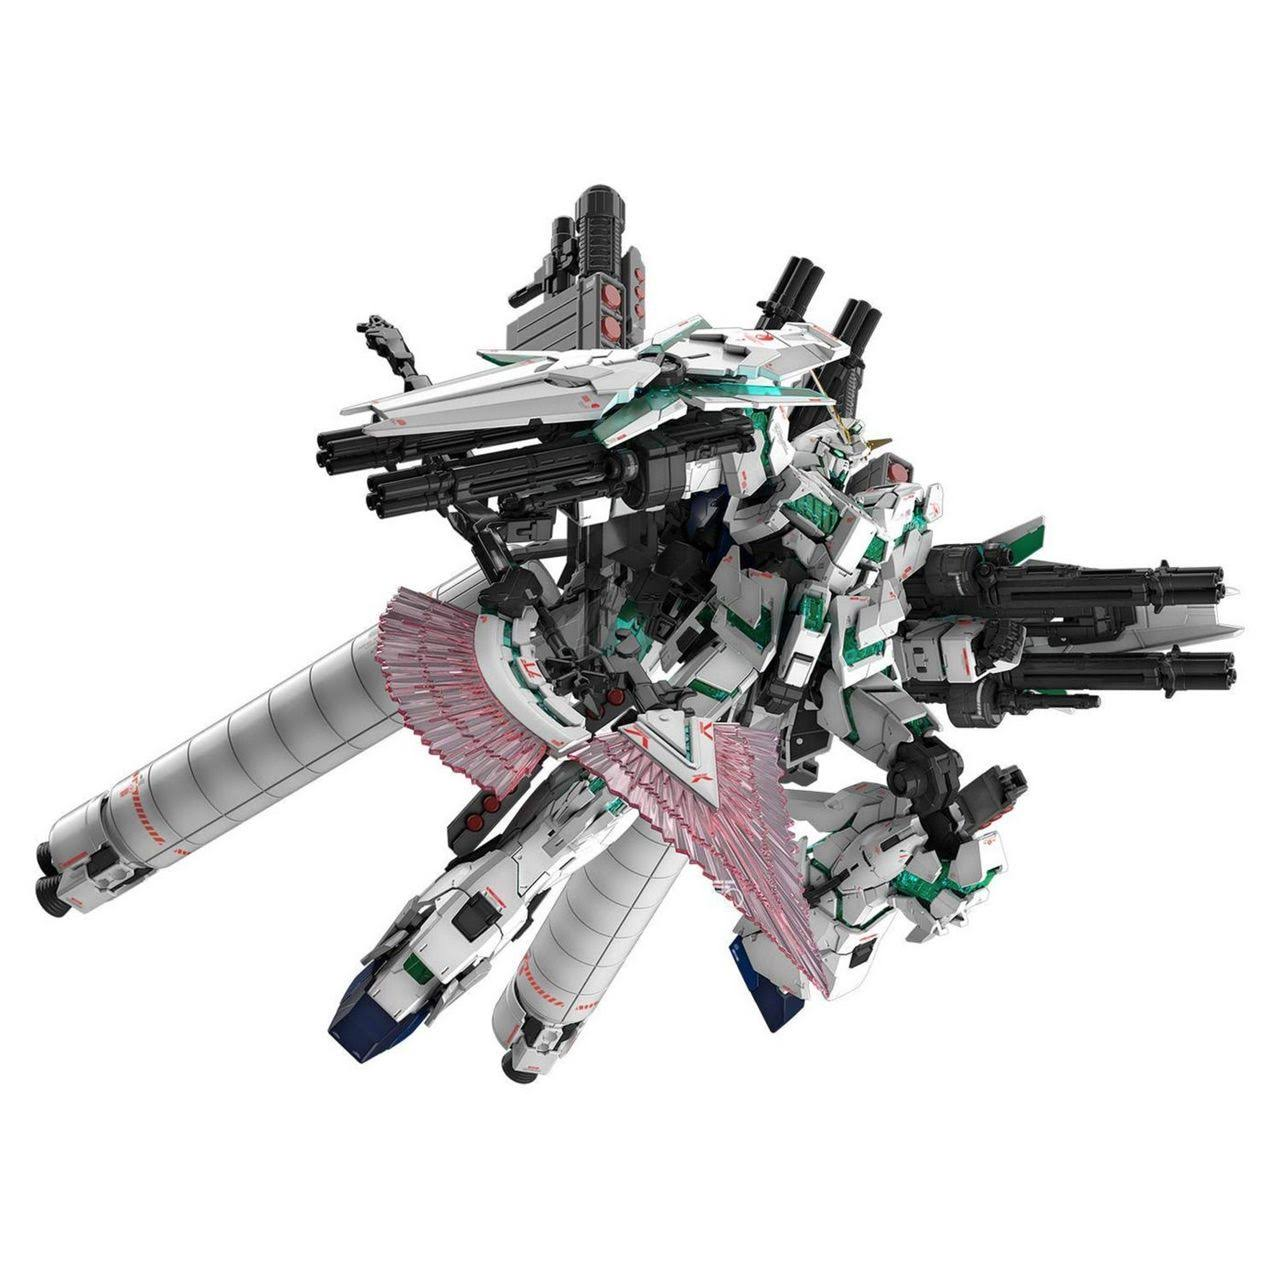 Bandai RG 30 Full Armor Unicorn Gundam Model Kits - 1/144 Scale